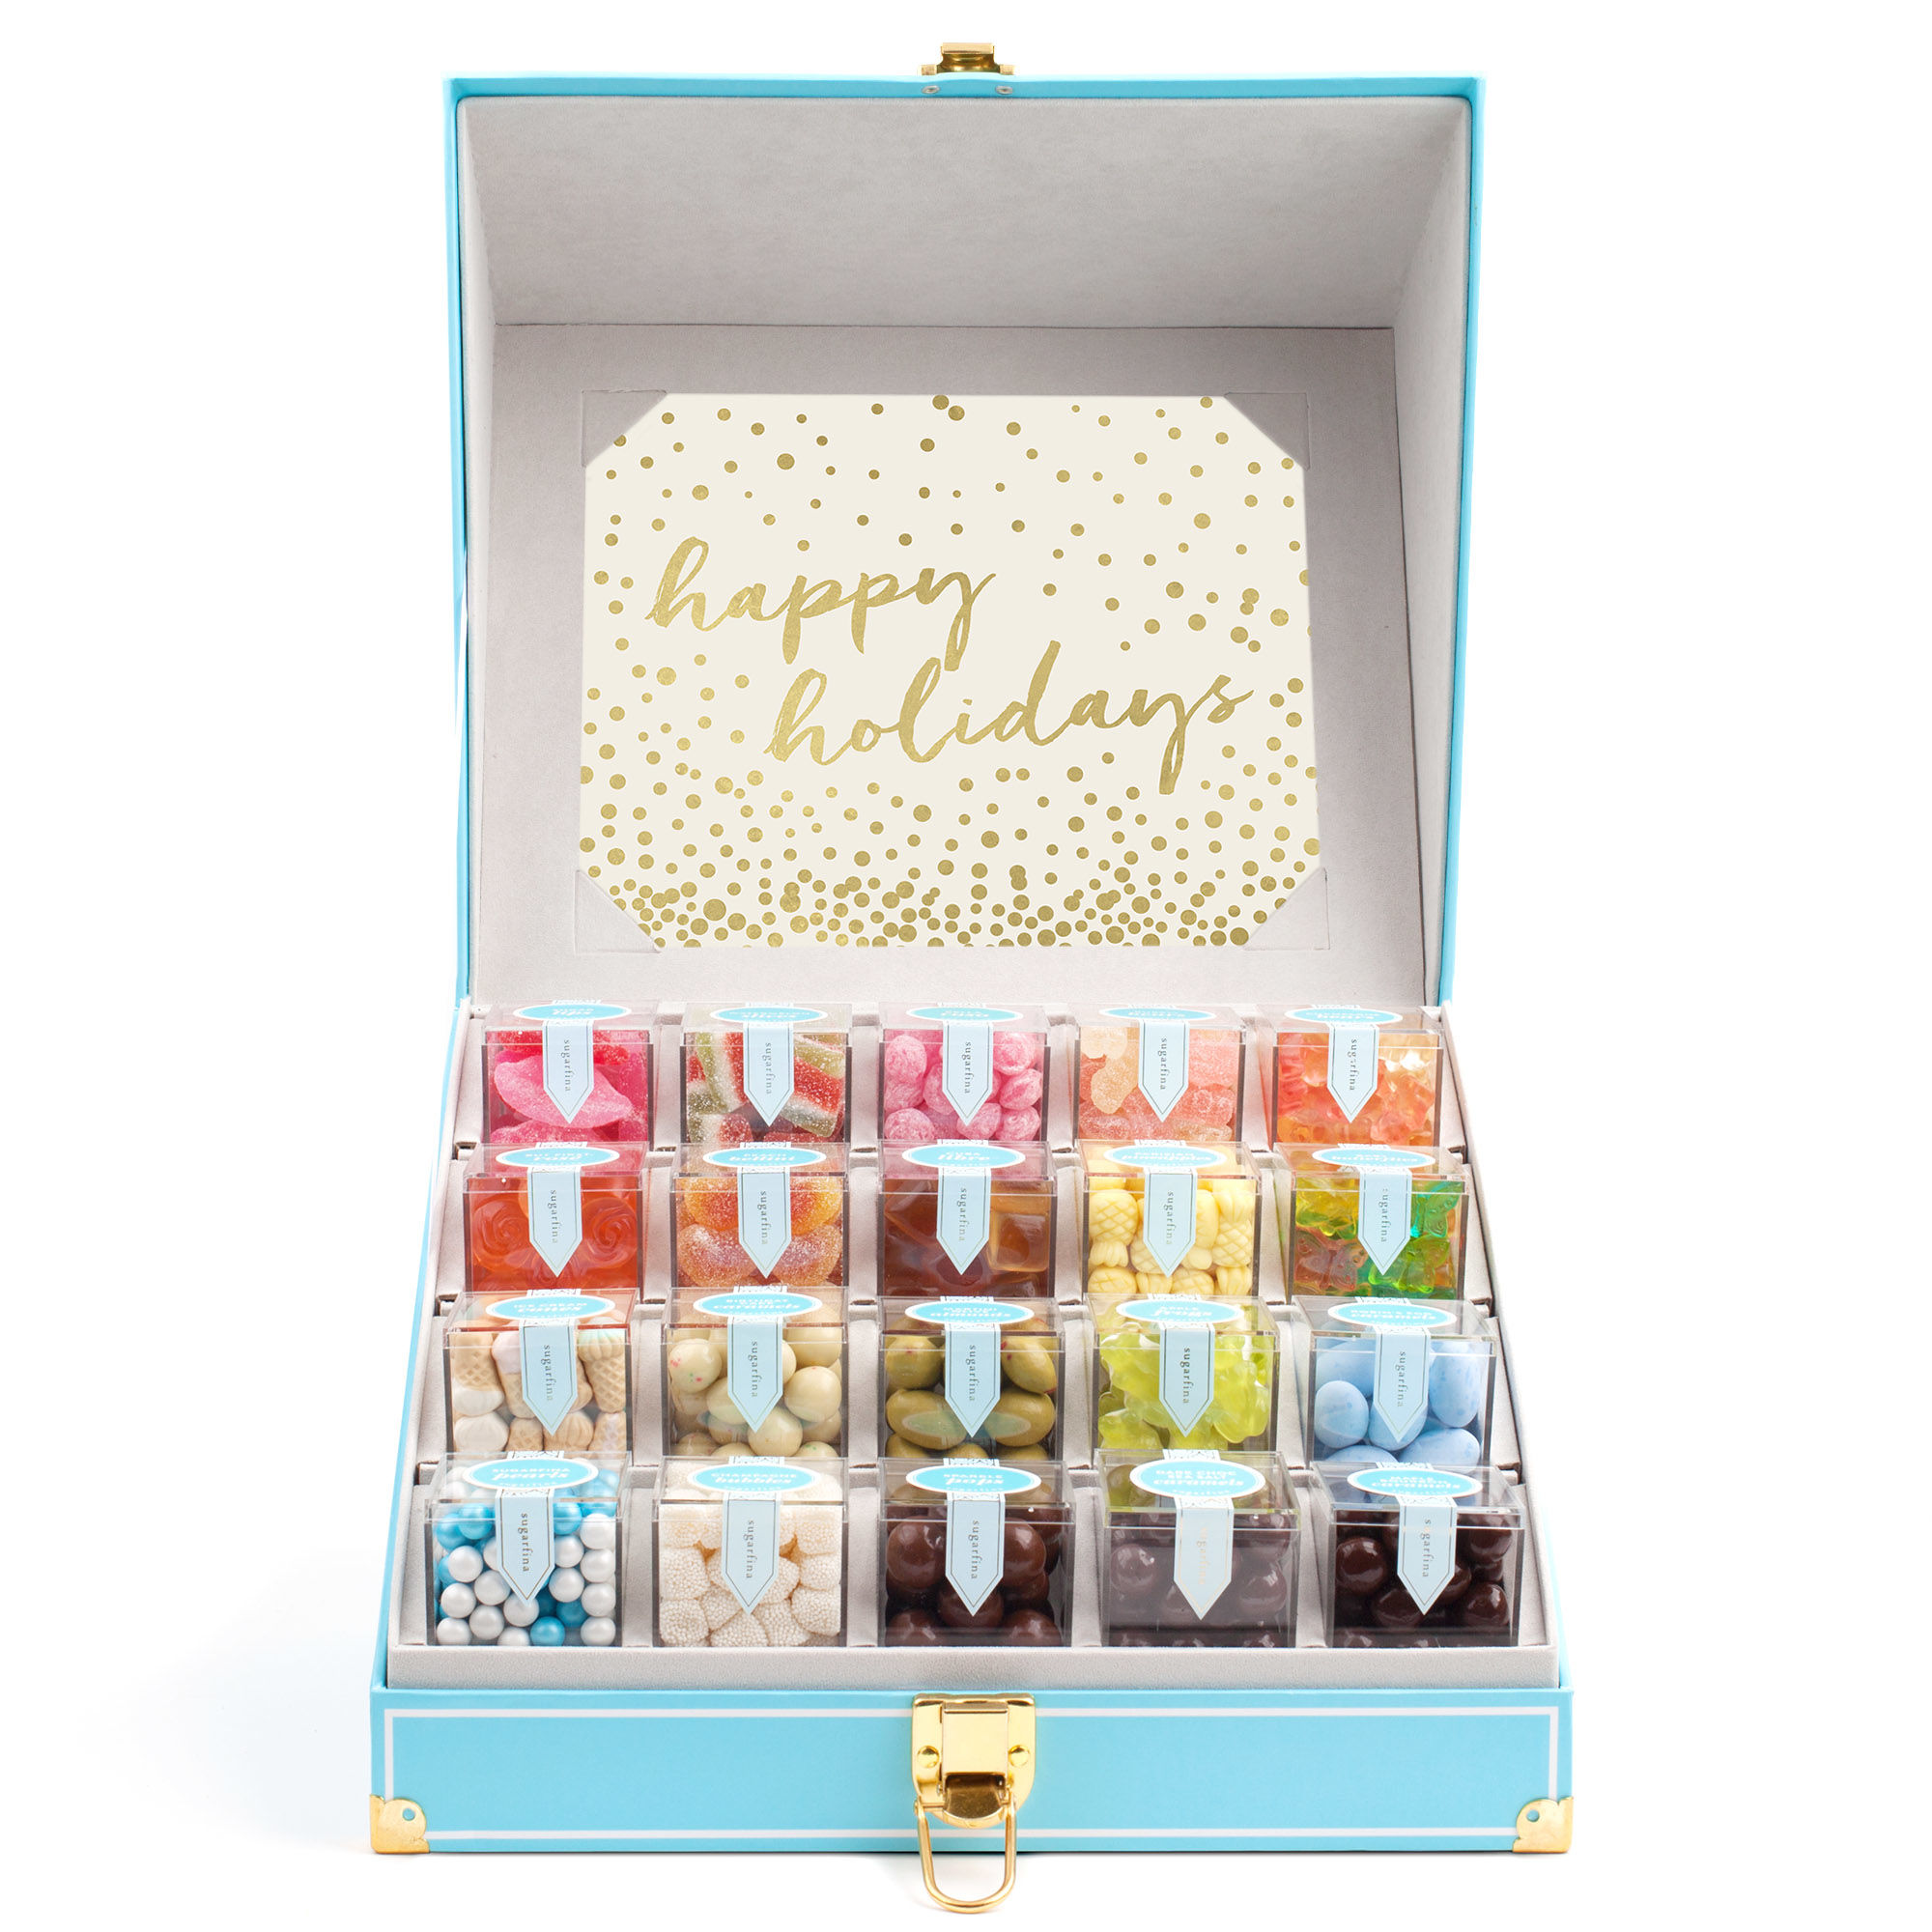 sugarfina-candy-trunk-blog1117.jpg